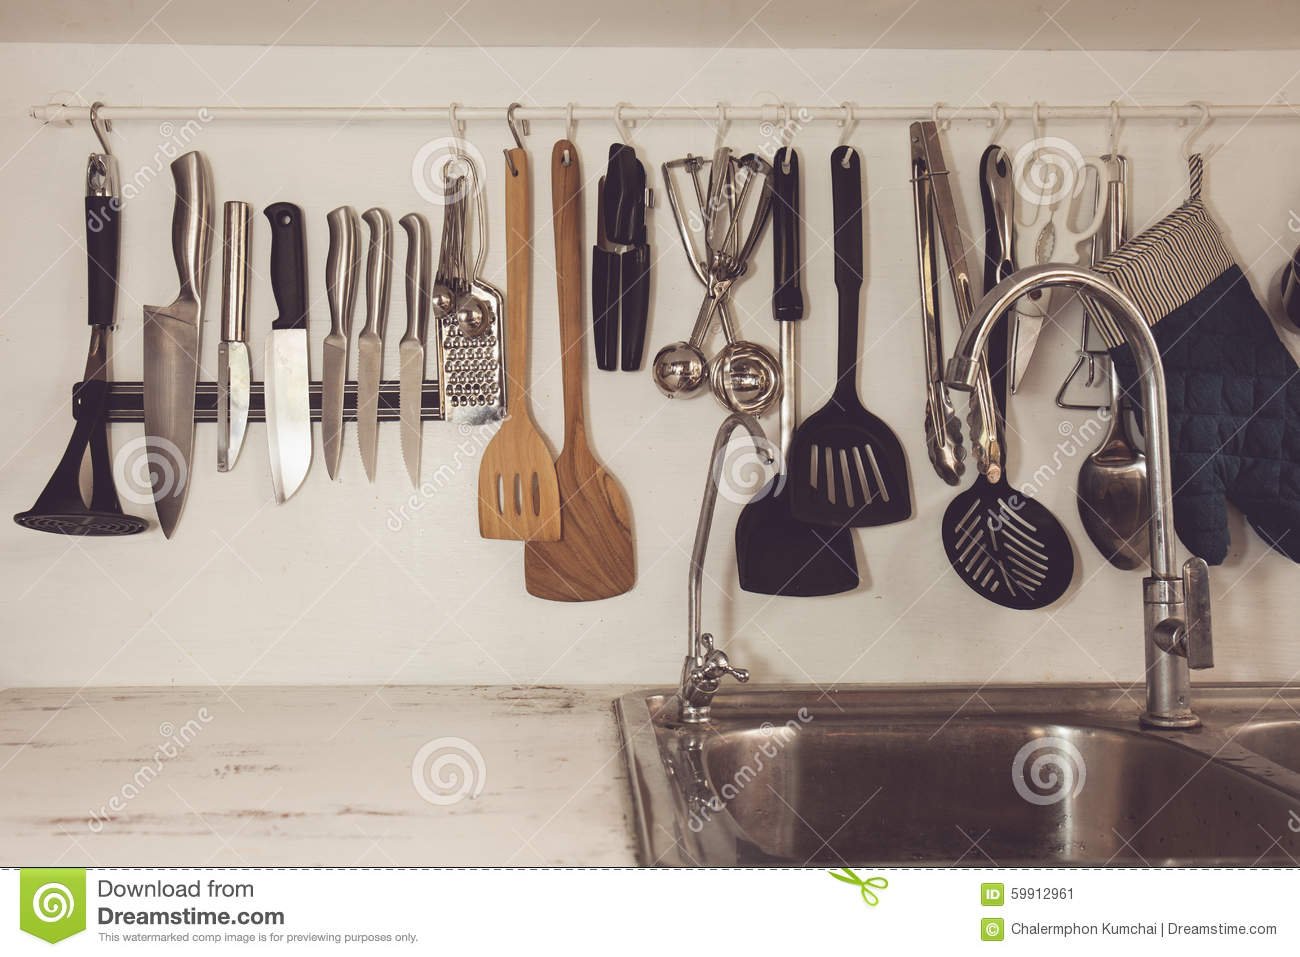 Kitchen Gadgets Online Vintage Cooking Utensils And Items Royalty Free Stock